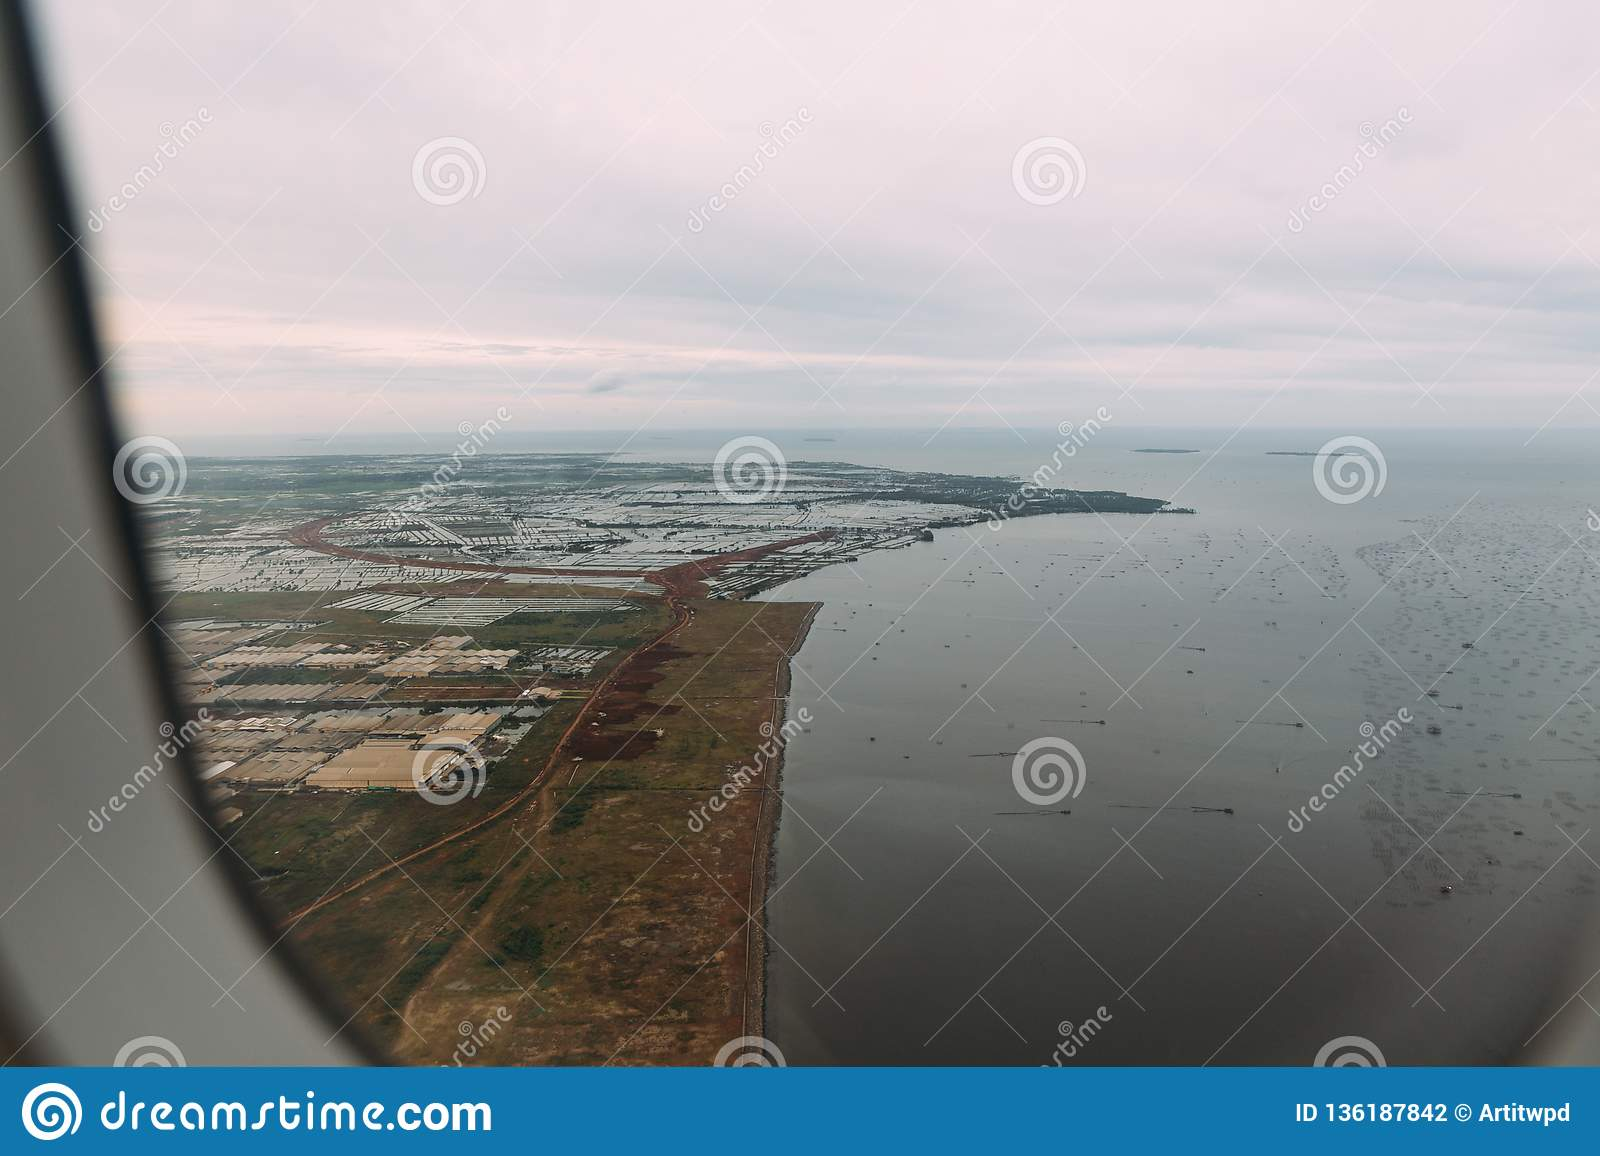 Industrial area in uptown near shore of Jakarta, Indonesia. Aerial view of factories, houses and sea from airplane